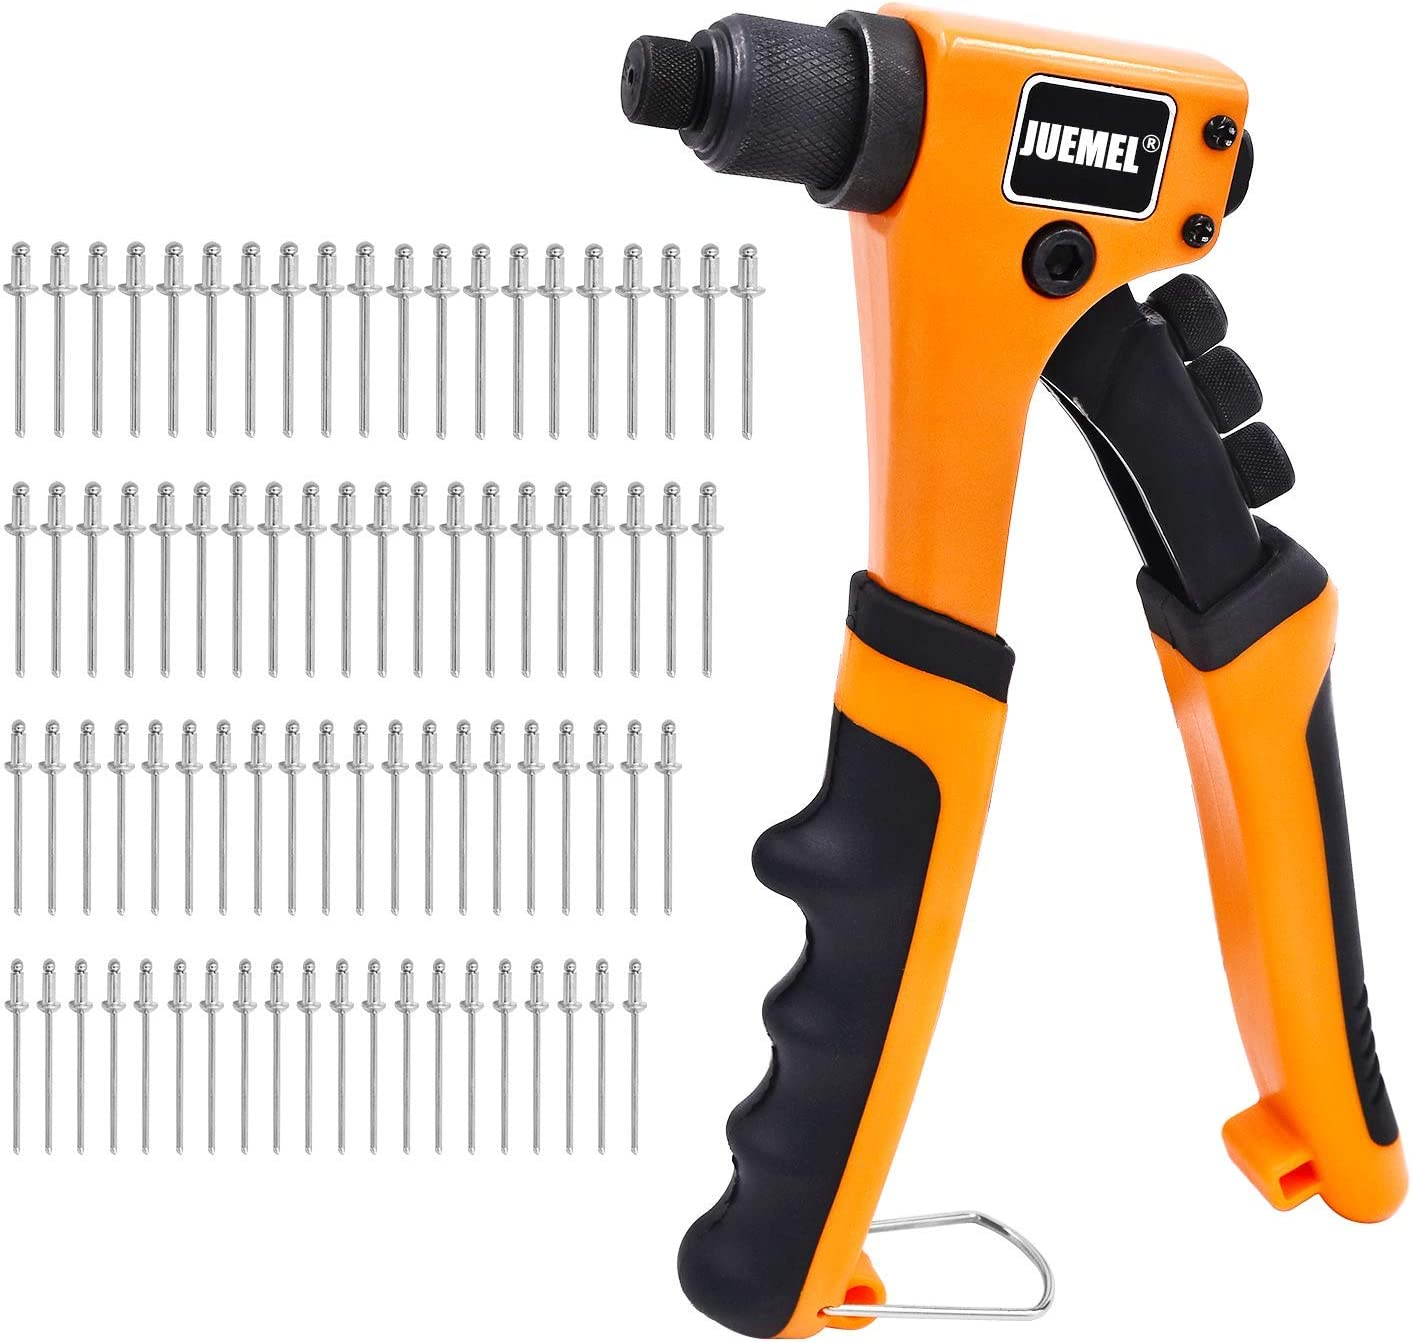 Rivet Gun Kit with 80 Pcs Rivets, JUEMEL Hand Riveter Set, 4 Sizes of Rivet heads Attached, Heavy Duty Durable Single Hand Rivet Gun Tool for Metal, Plastic and Leather